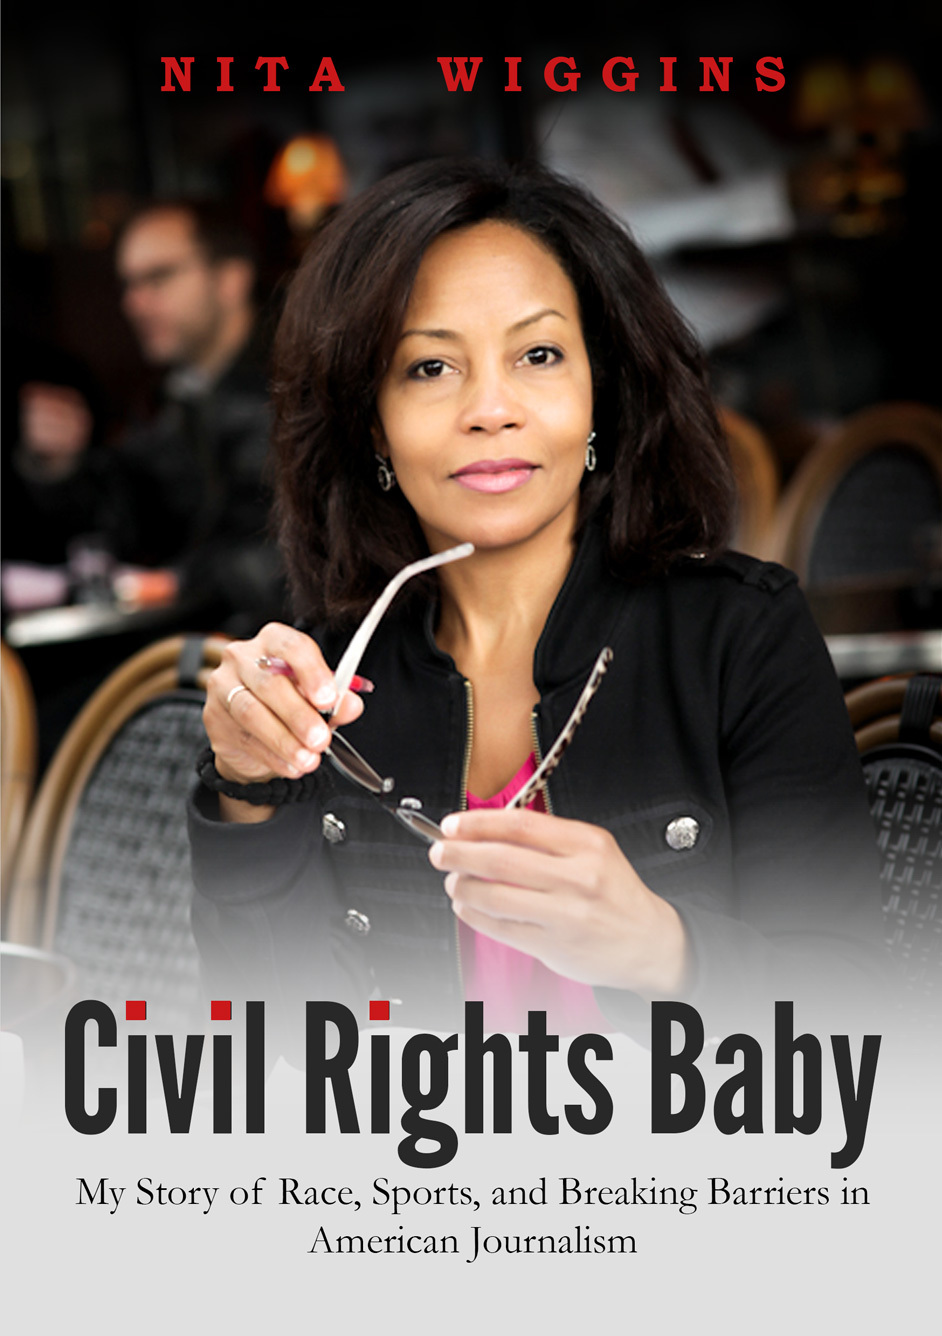 CIVIL RIGHTS BABY - MY STORY OF RACE, SPORTS, AND BREAKING BARRIERS IN AMERICAN JOURNALISM